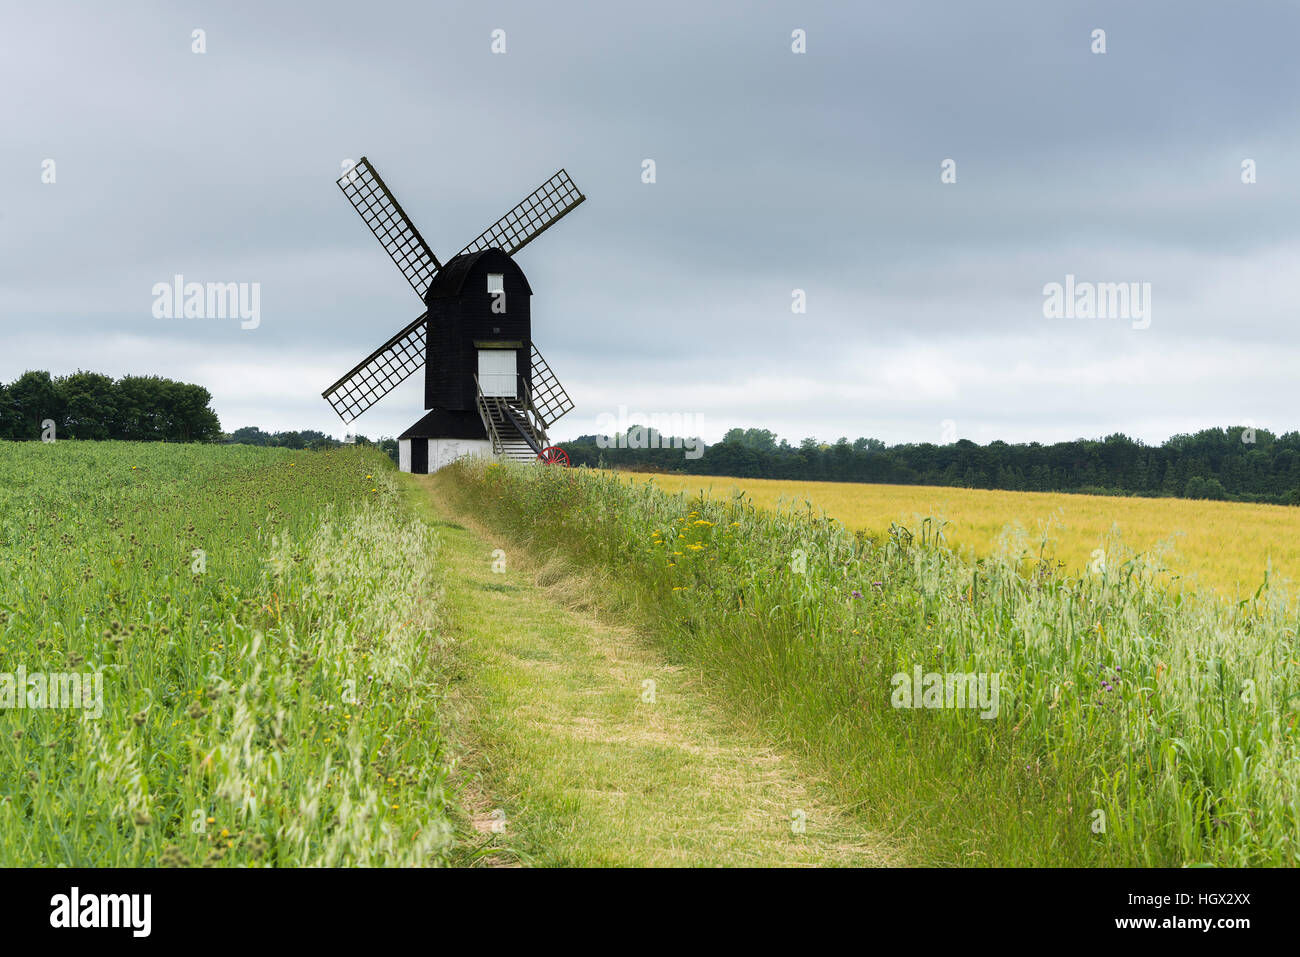 Pitstone Windmill with a wheat field in the foreground, Buckinghamshire, England, UK - Stock Image